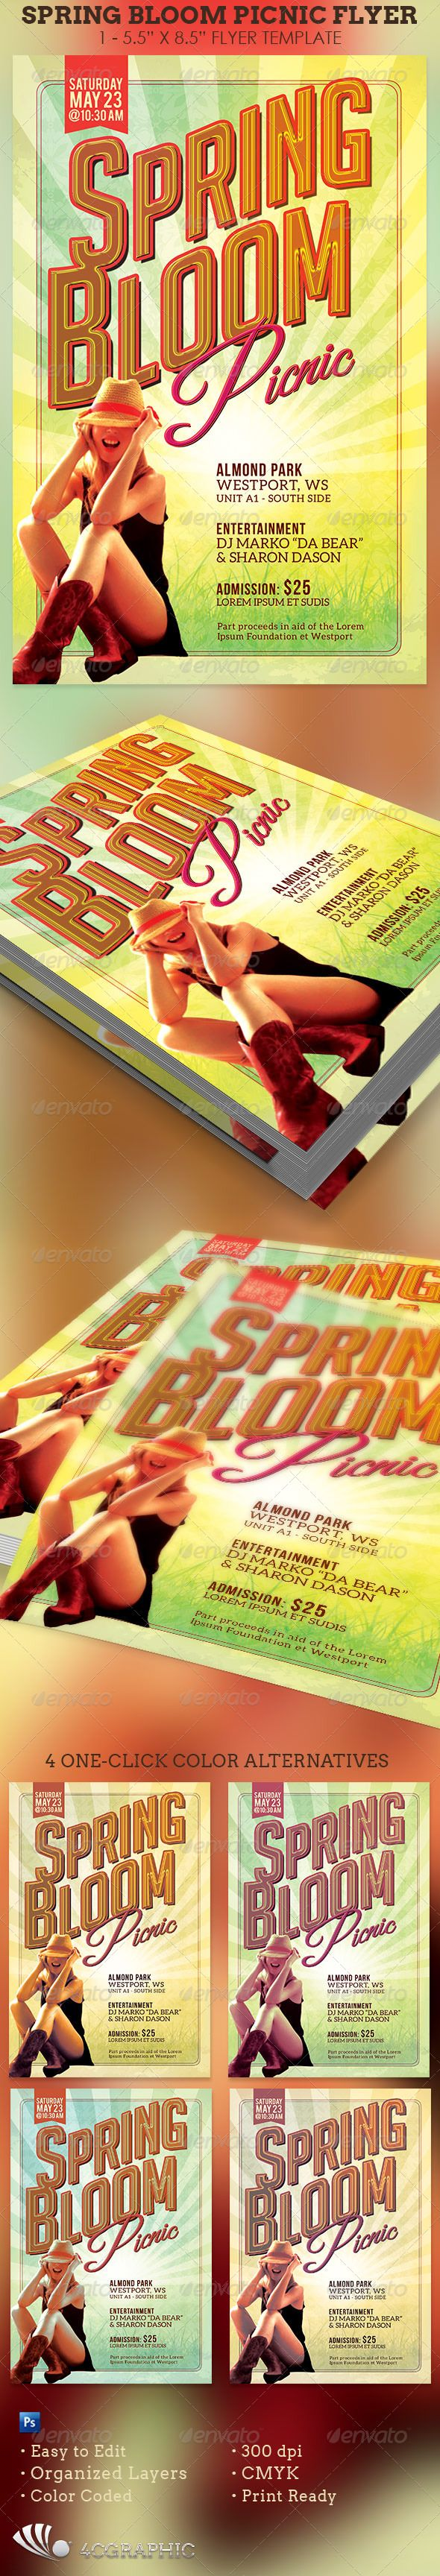 Spring Bloom Picnic Flyer Template  Spring Blooms Flyer Template